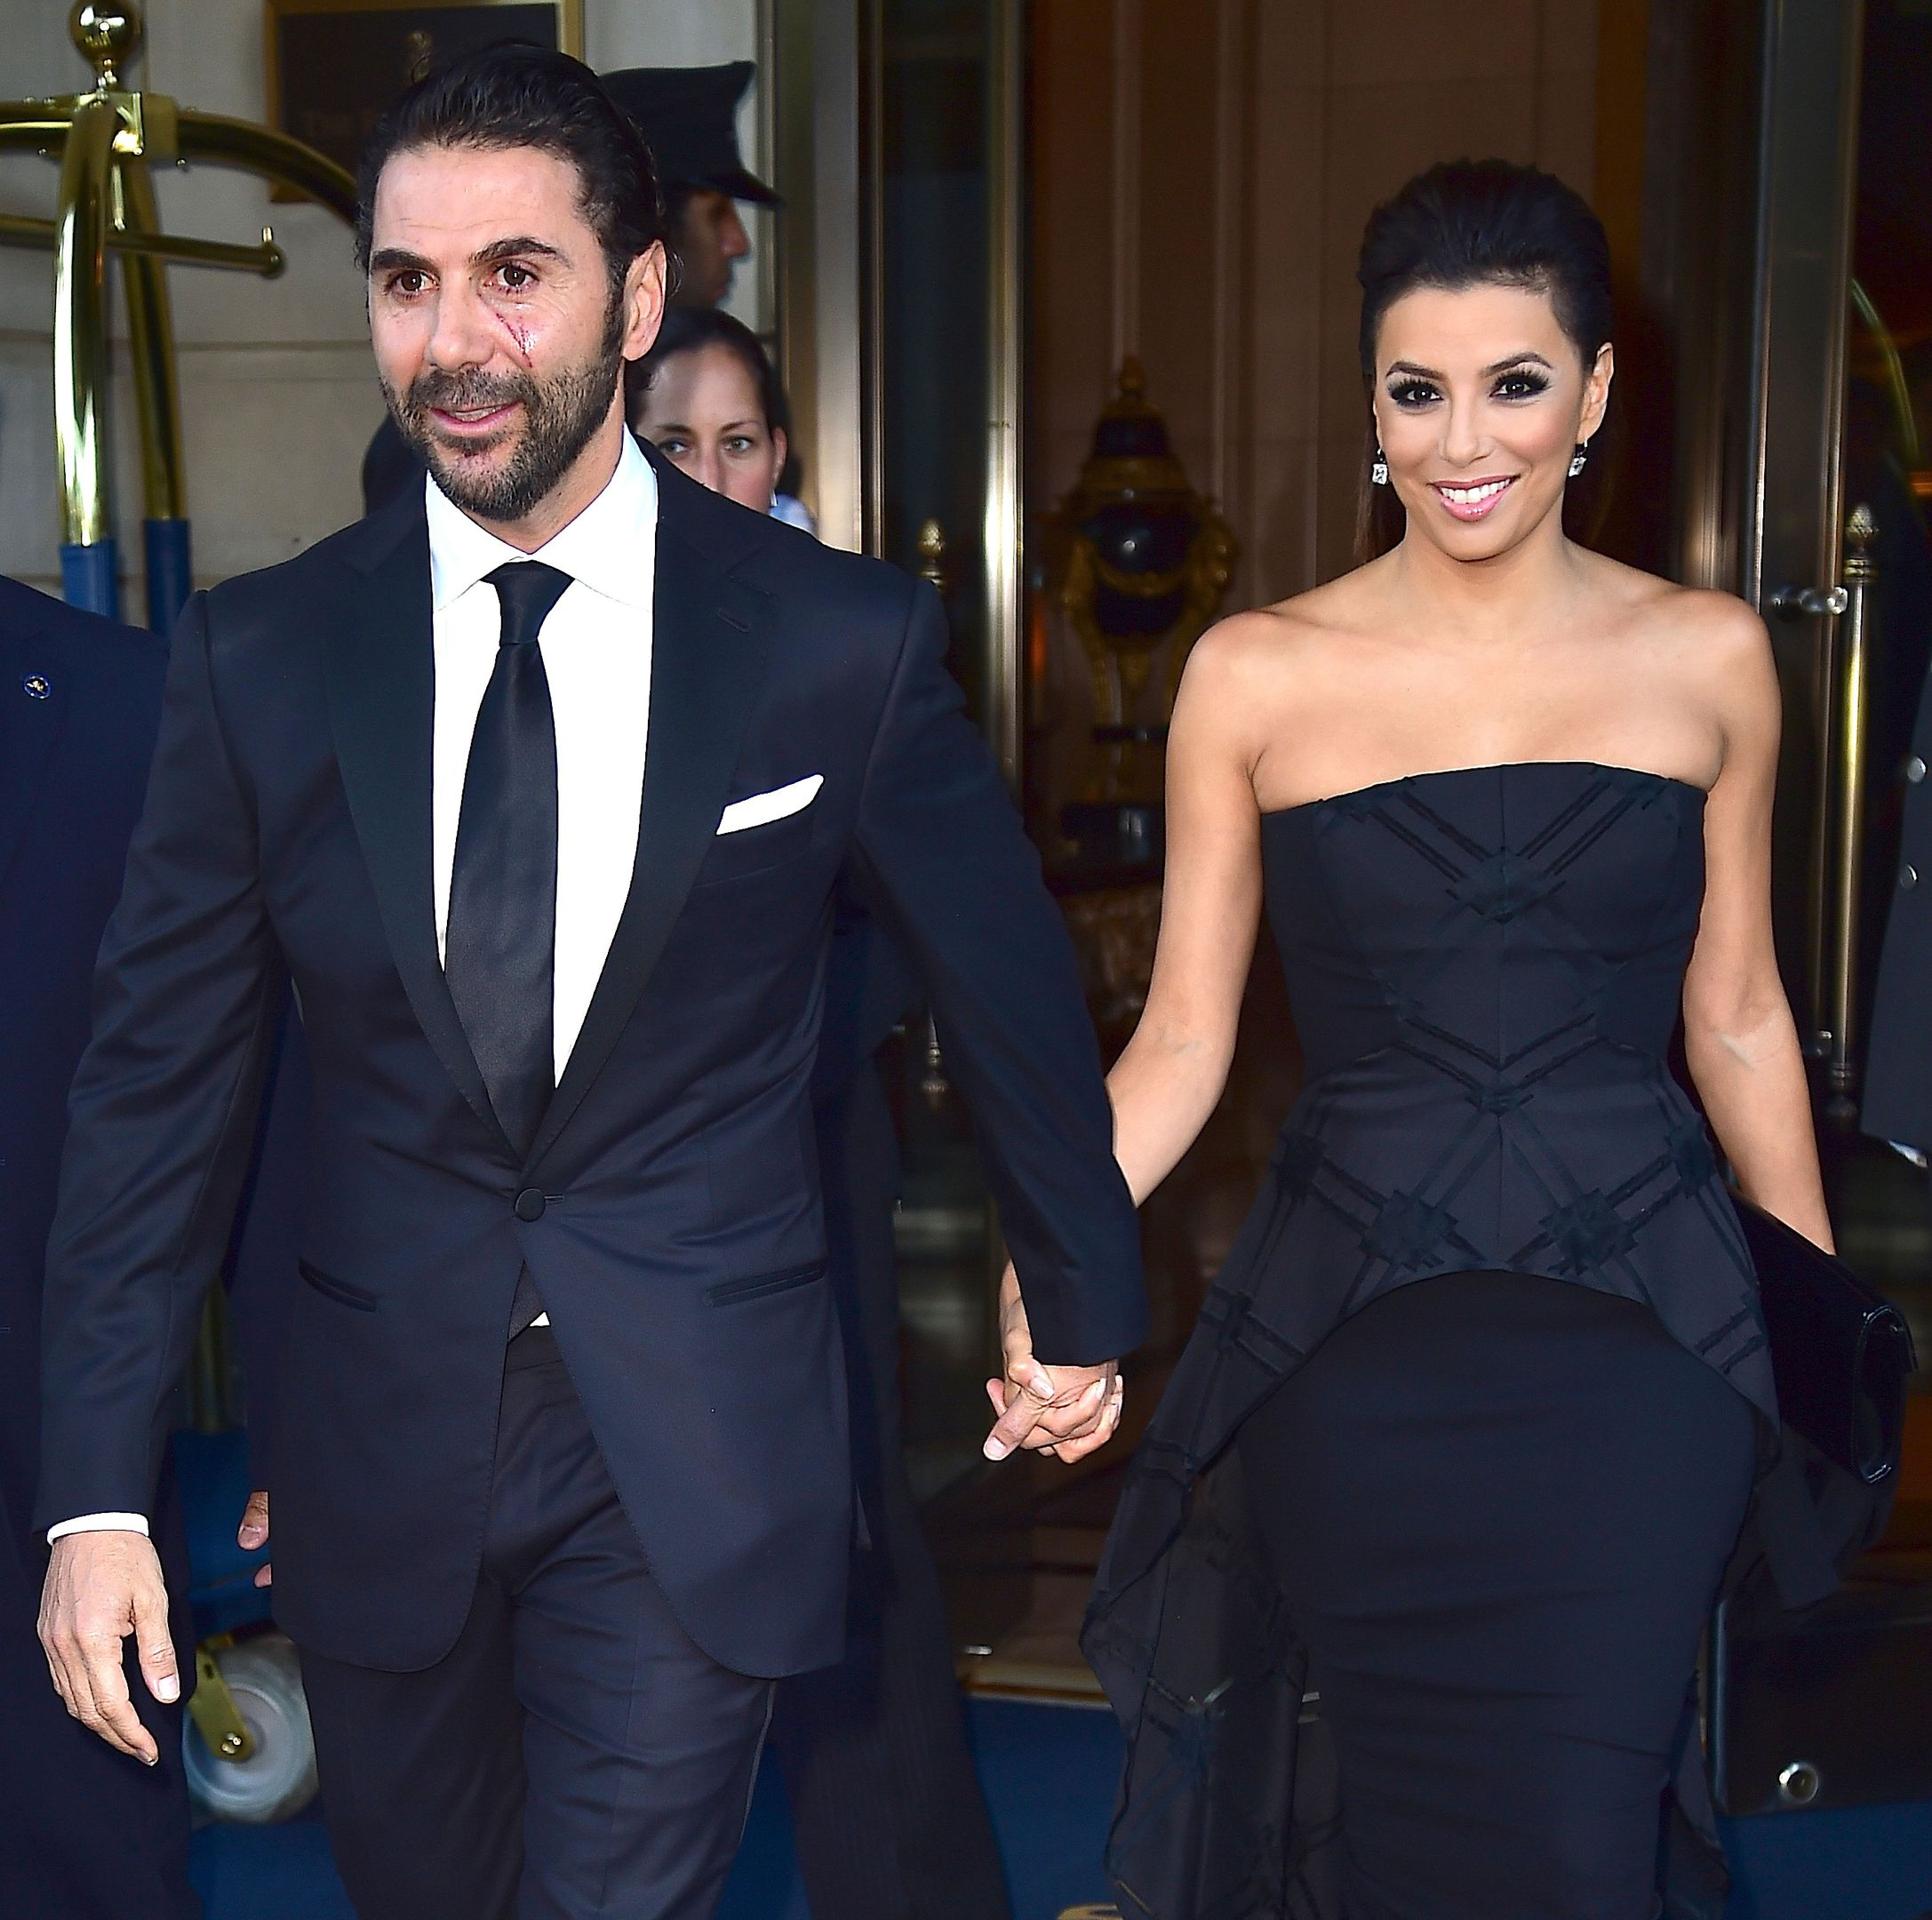 The flawless Christmas news! Eva Longoria and Pepe Baston are expecting!